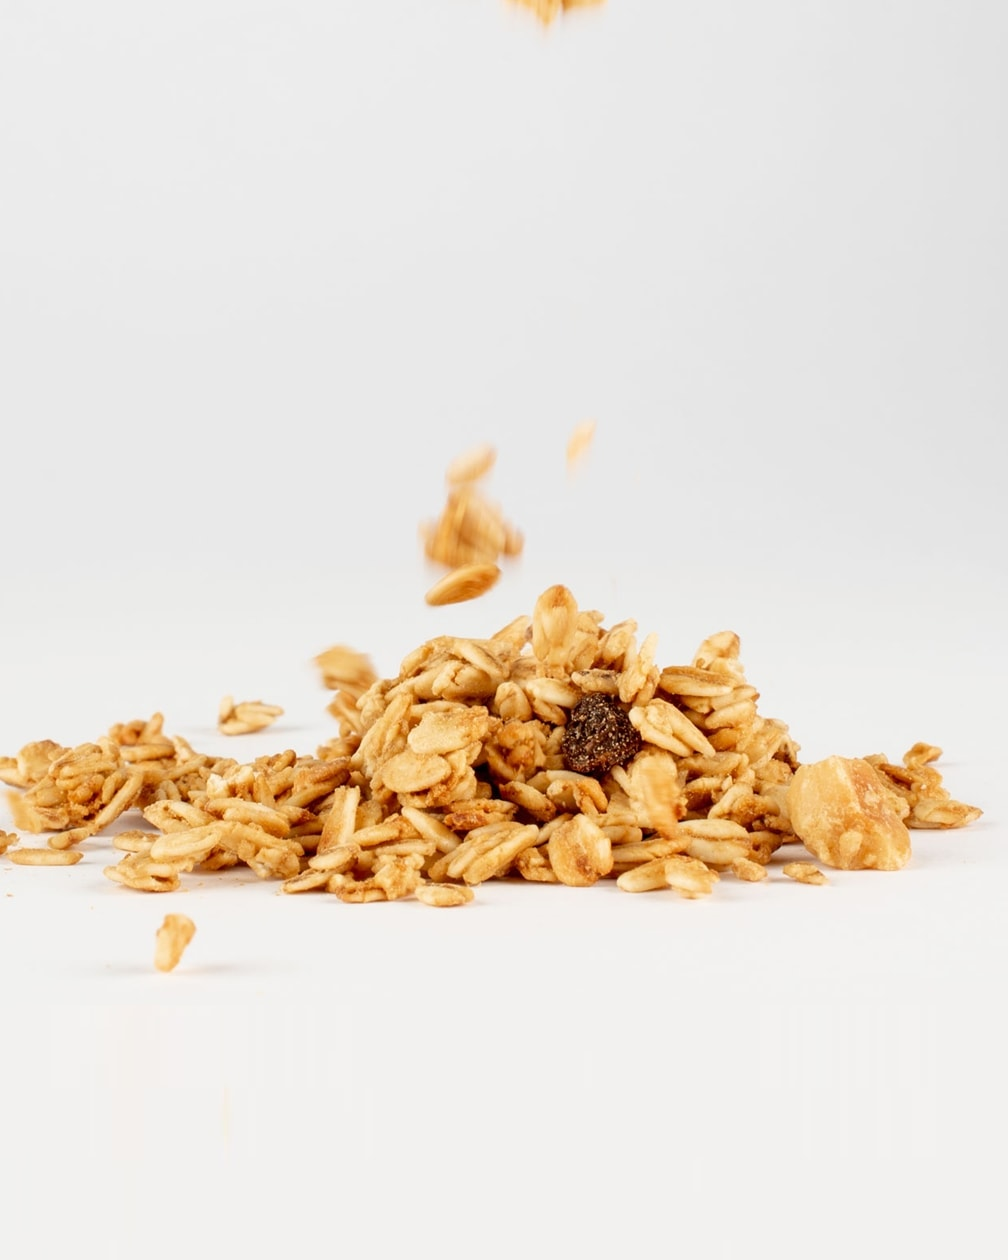 1951_Crunchy-Granola_Hasselnot_Russin_Detail_1260px